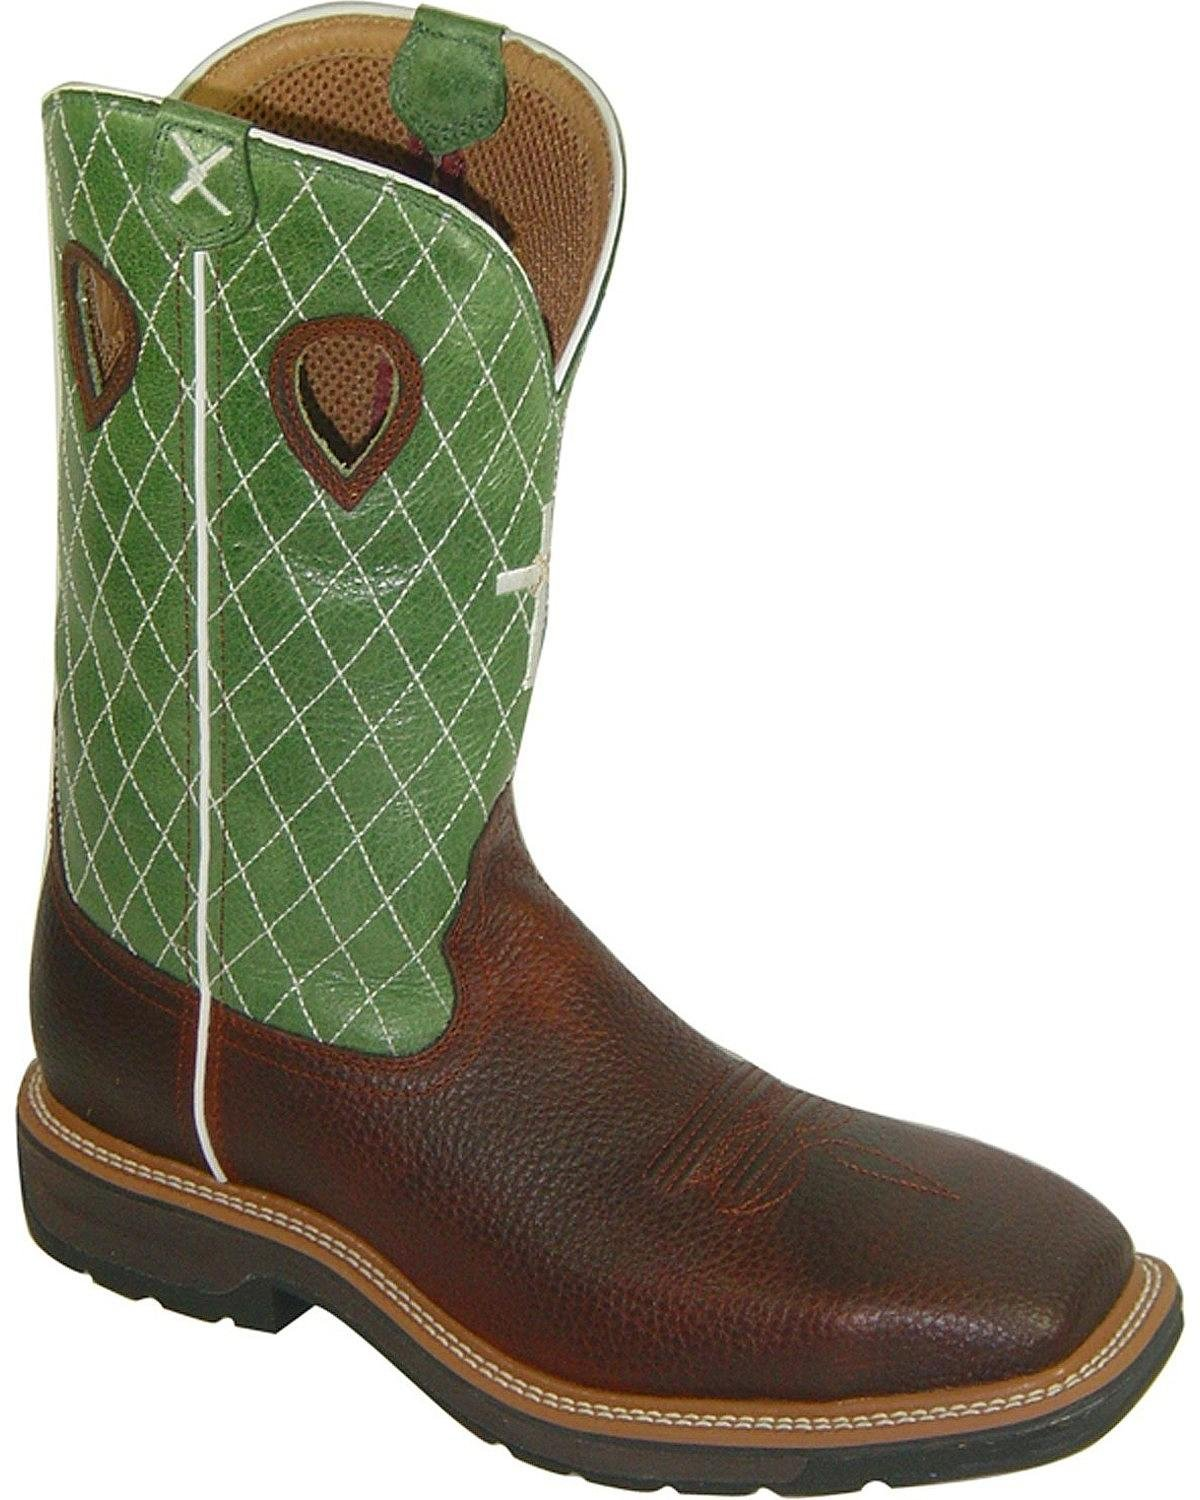 MLCS002 Twisted X Men's Lite Cowboy ST Safety Boots - Lime/Brown - 11.5 - EE